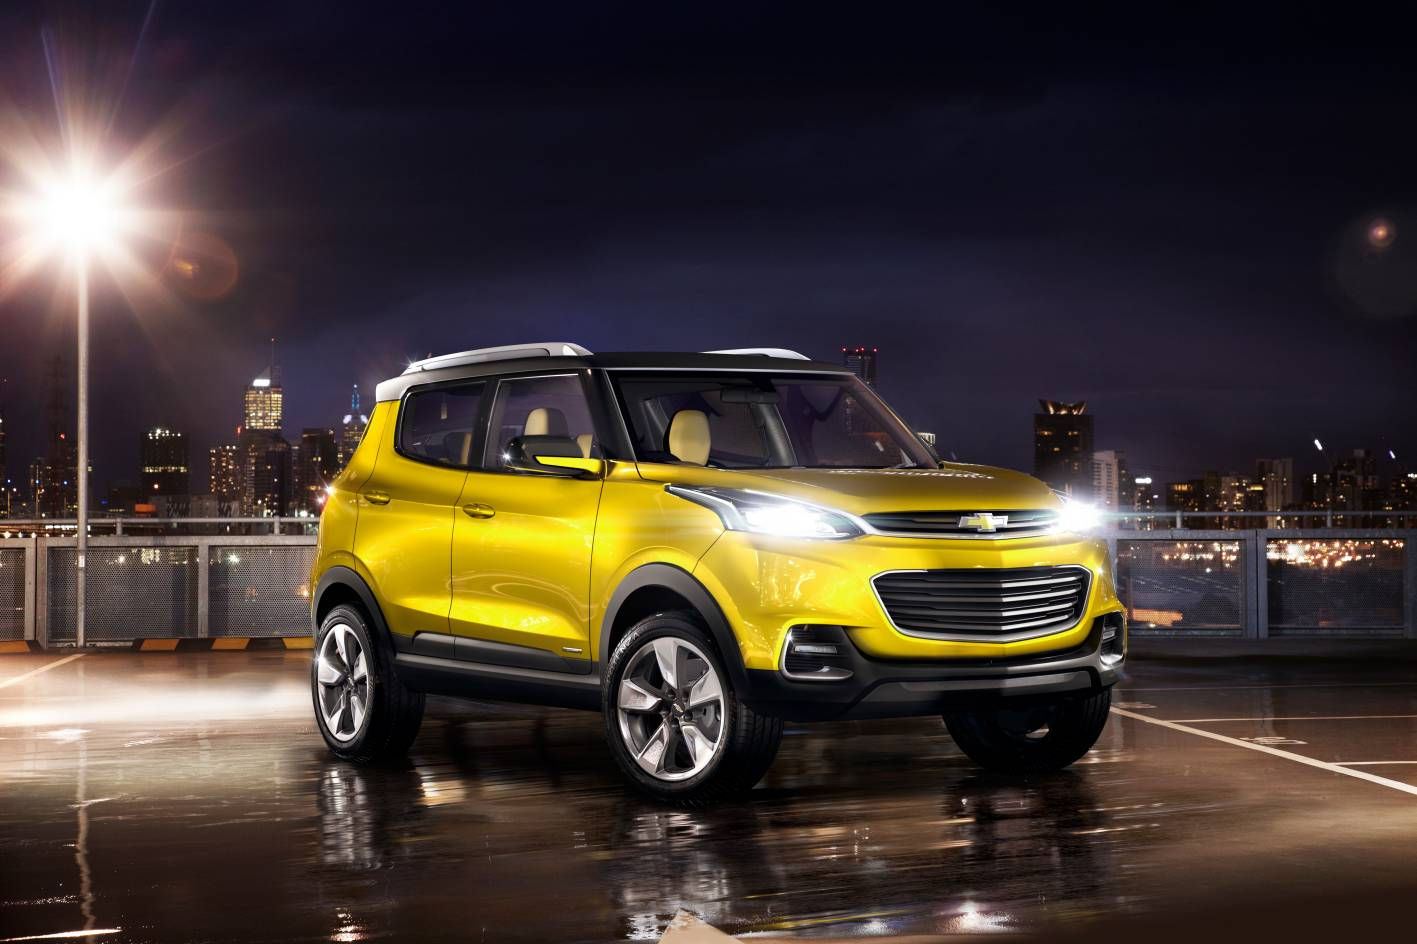 Chevrolet Cars - News: Chevrolet Adra small SUV for India